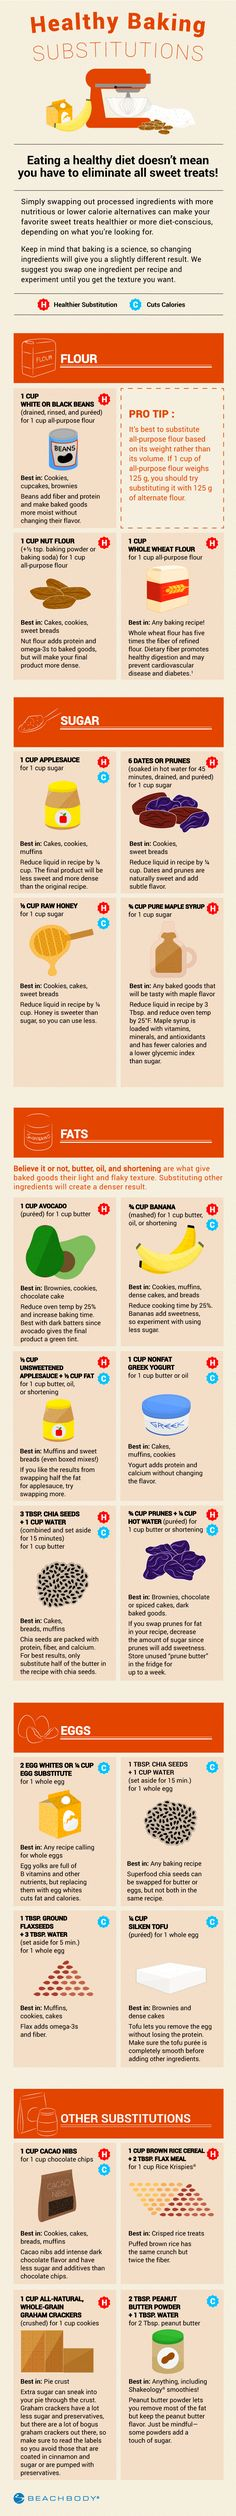 When you're baking, Butter imparts richness and flavor...but so do other healthier foods. Look below to see what works as a butter substitute and discover more healthy swaps.